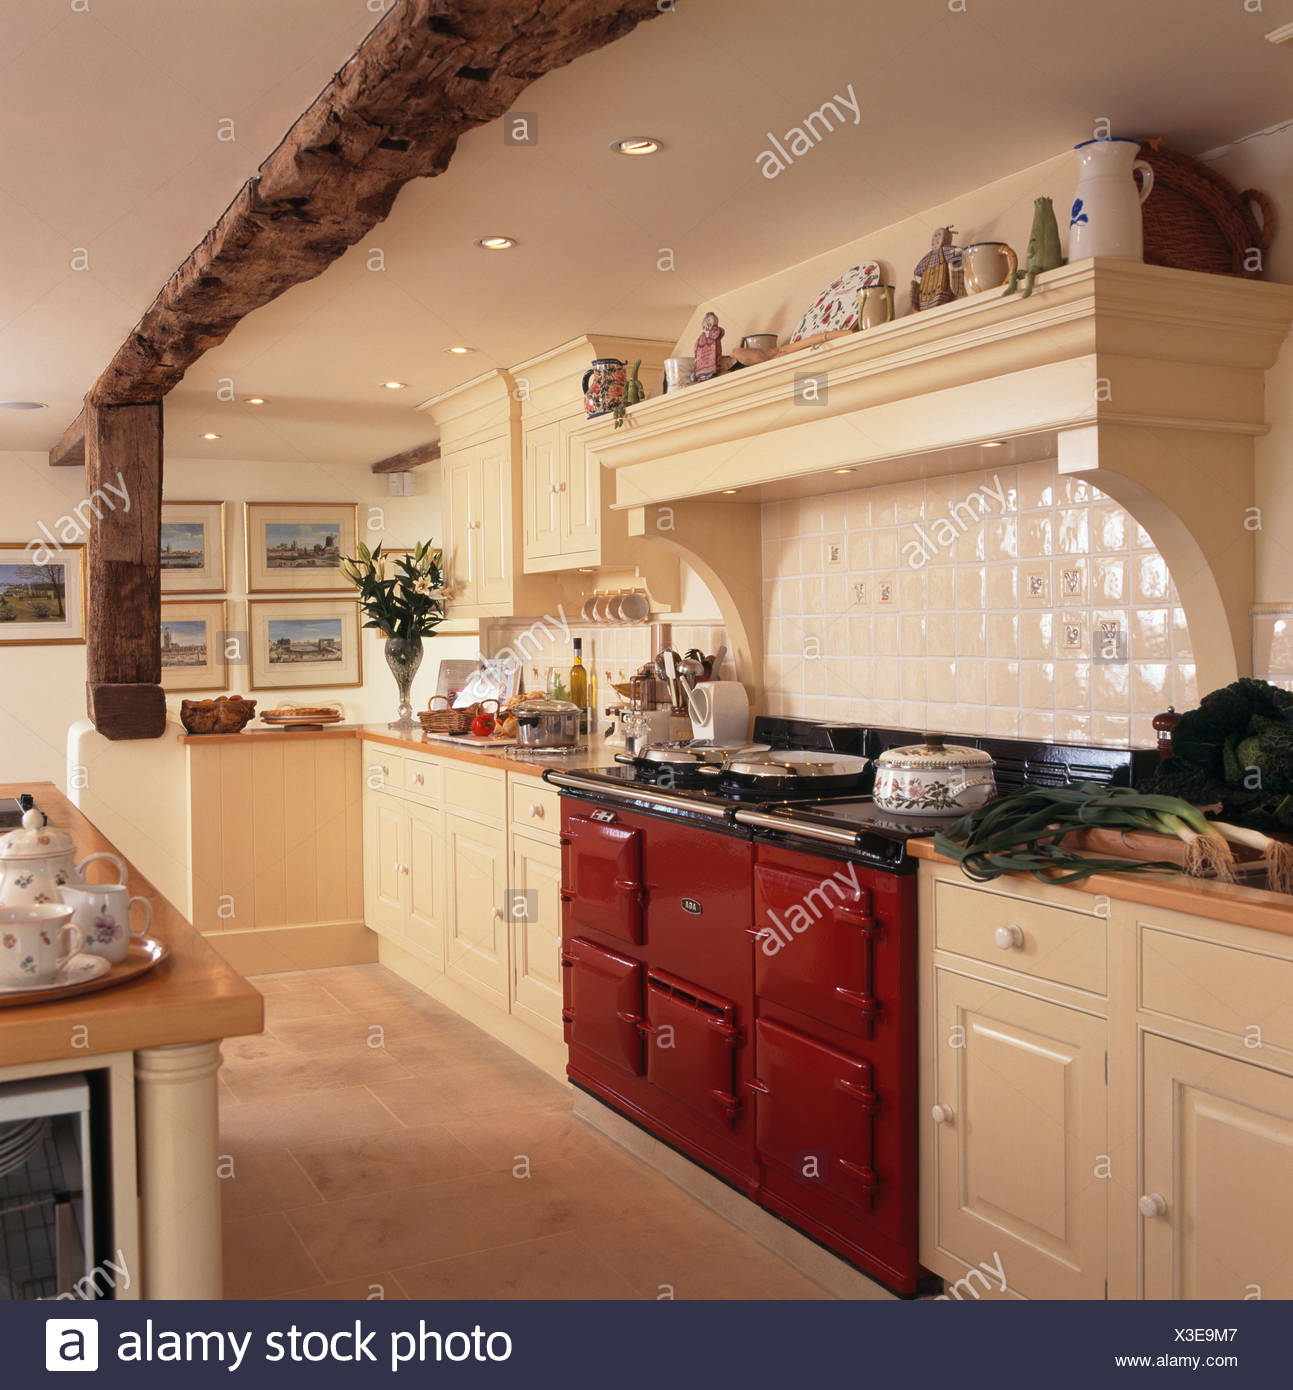 Large Country Kitchen Aga Imágenes De Stock & Large Country Kitchen ...